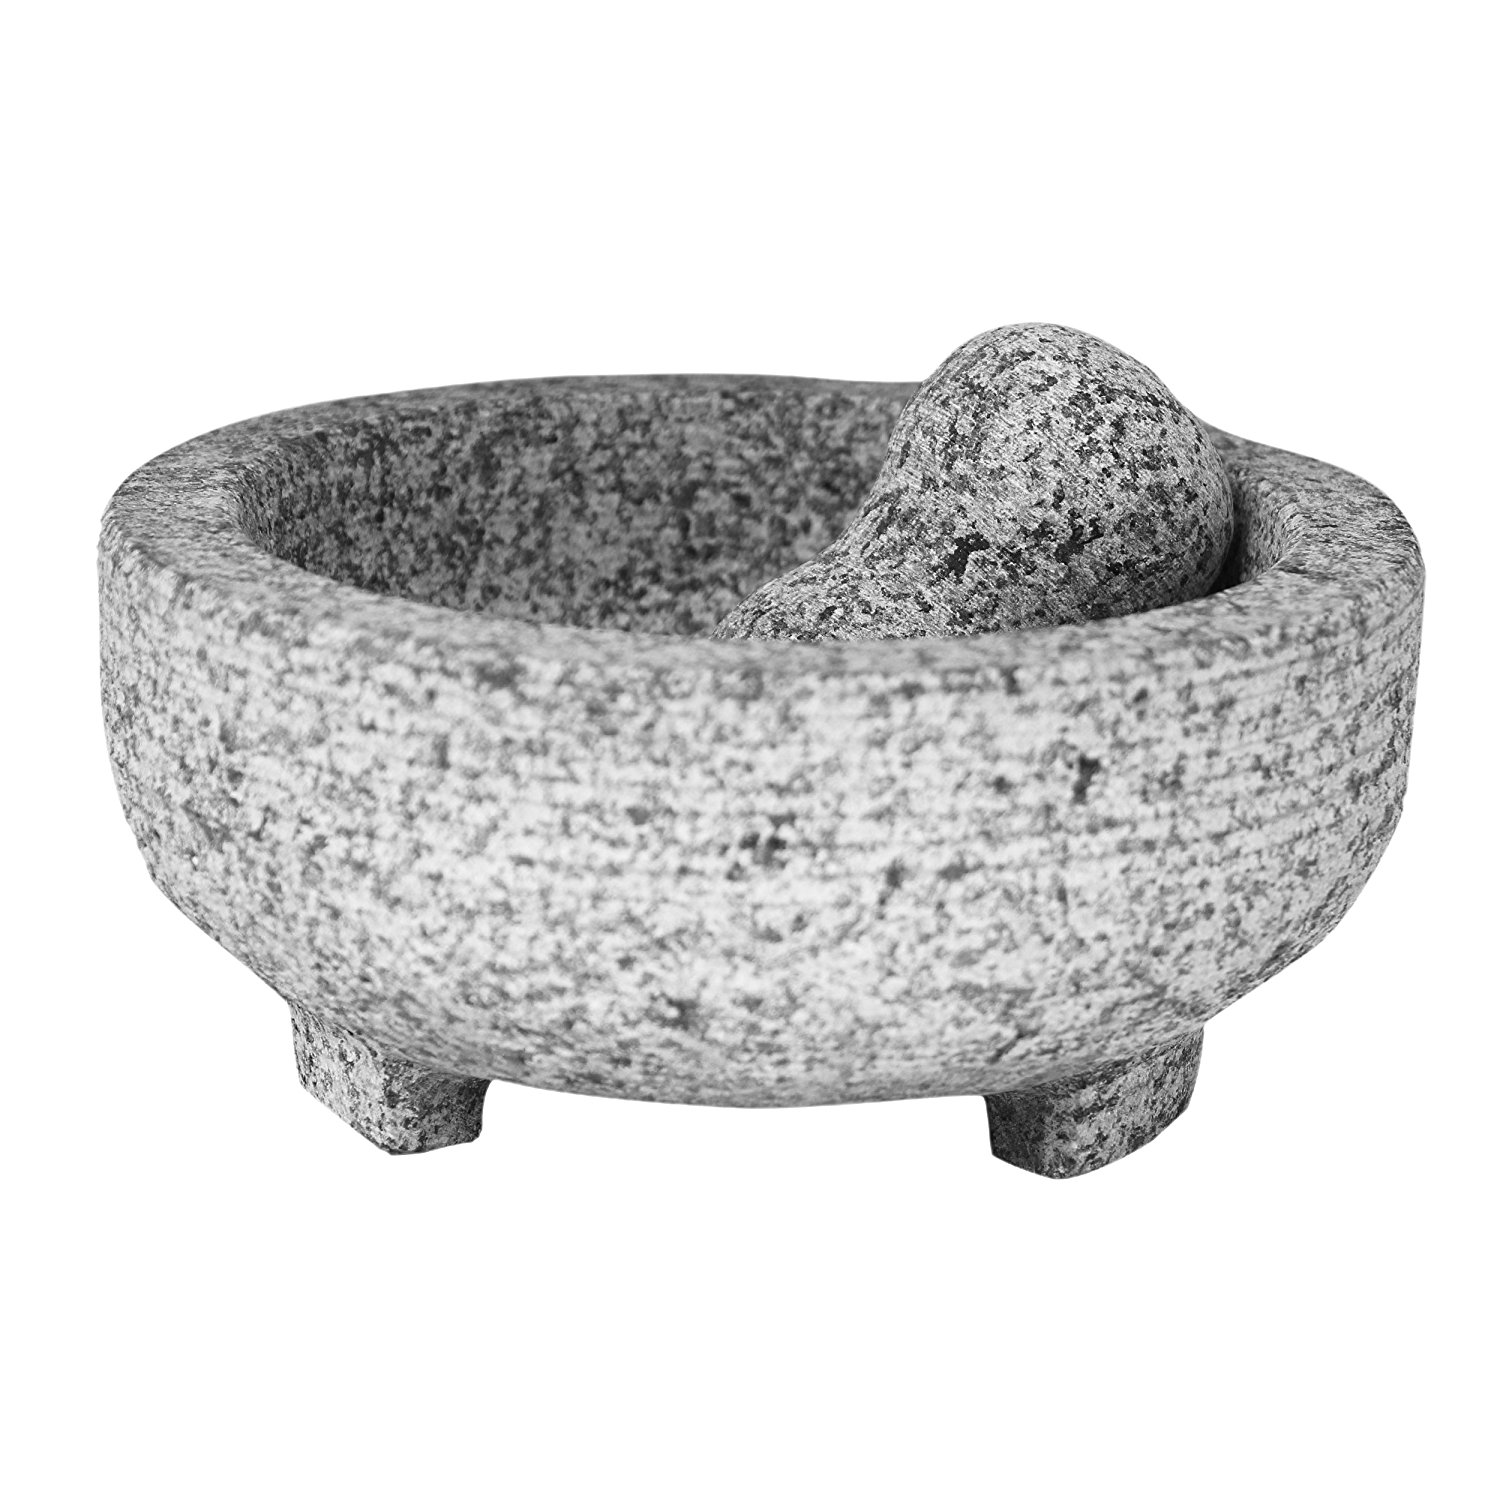 4-Cup Granite Molcajete Mortar and Pestle, Enjoy an authentic, hands-on tool for grinding grains, spices, and herbs, as well as making salsas,.., By Vasconia Ship from US